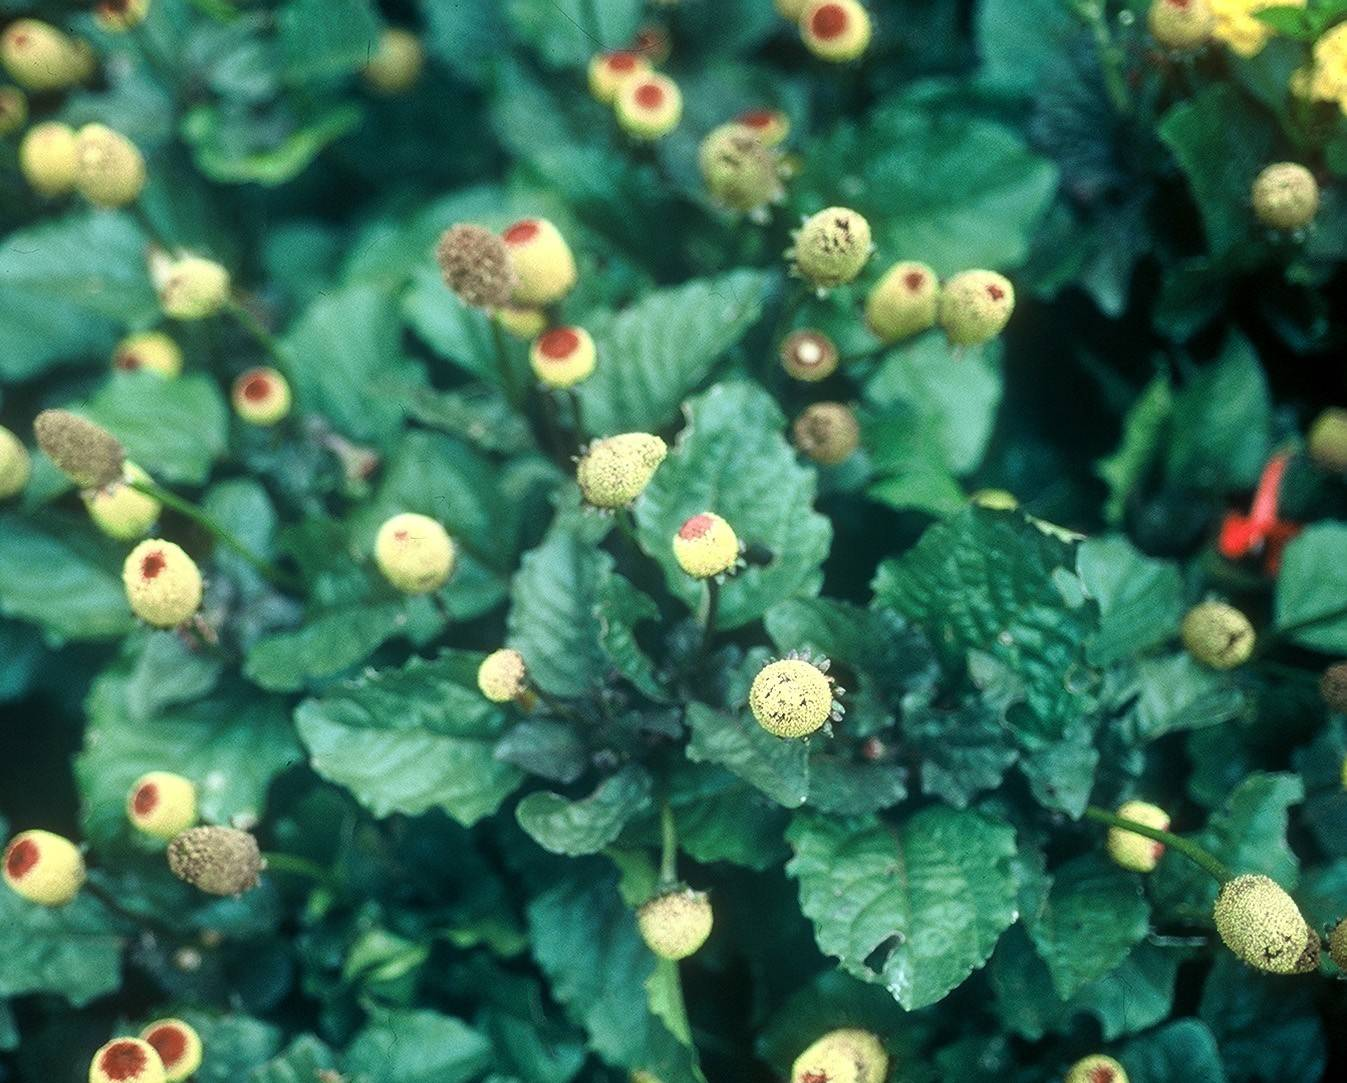 The Eyeball Plant (formal name: Acmella oleracea) is the only annual that looks back at you, Armitage said.